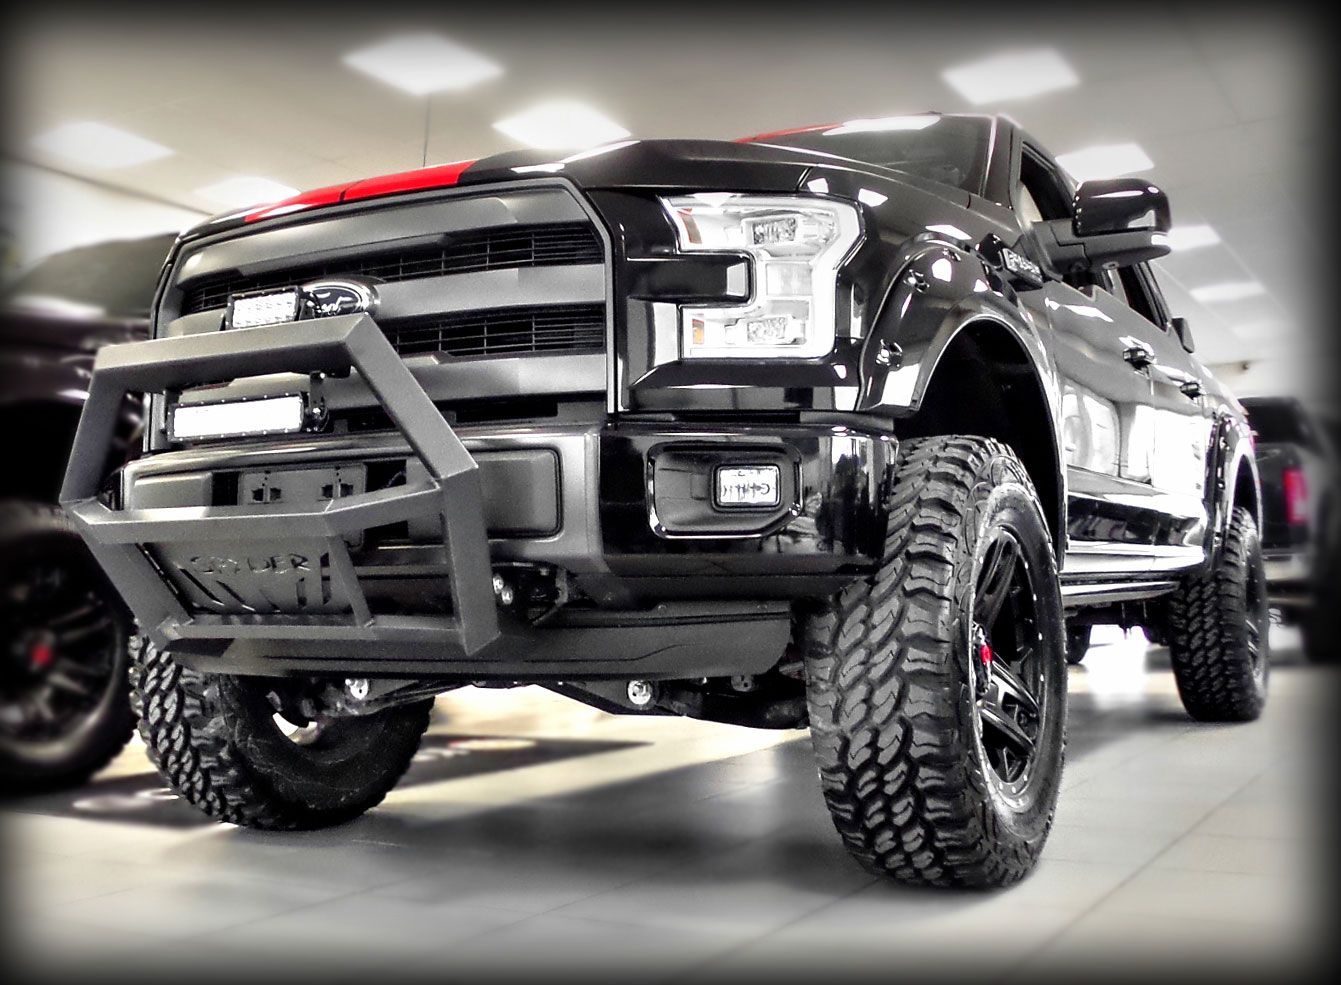 2015 kentwood kustoms lariat black widow edition supercrew with ecoboost mods include procomp lift kit paint to match bushwacker flares